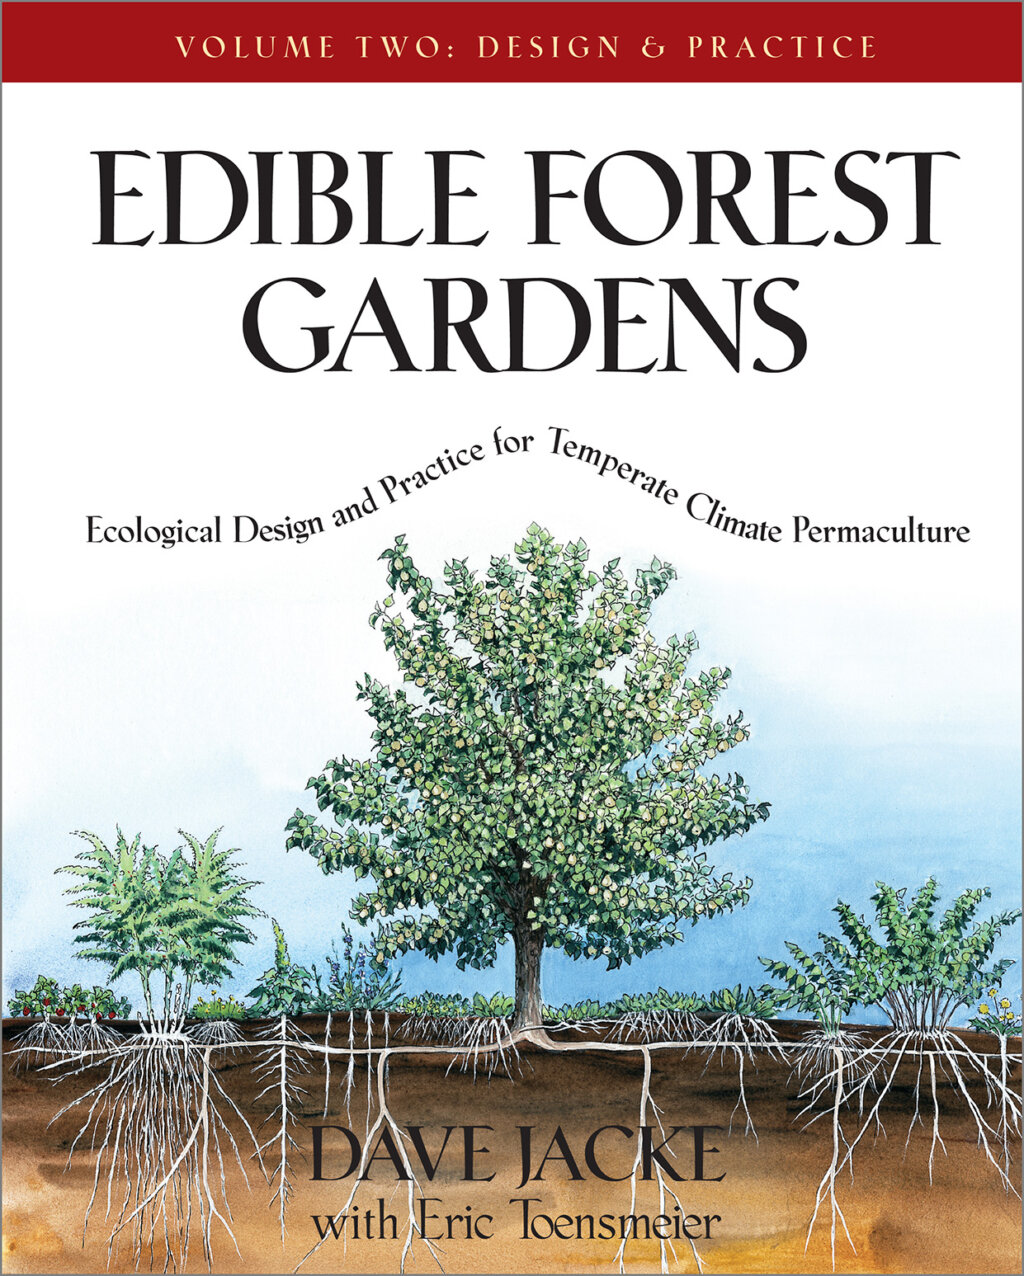 The Edible Forest Gardens